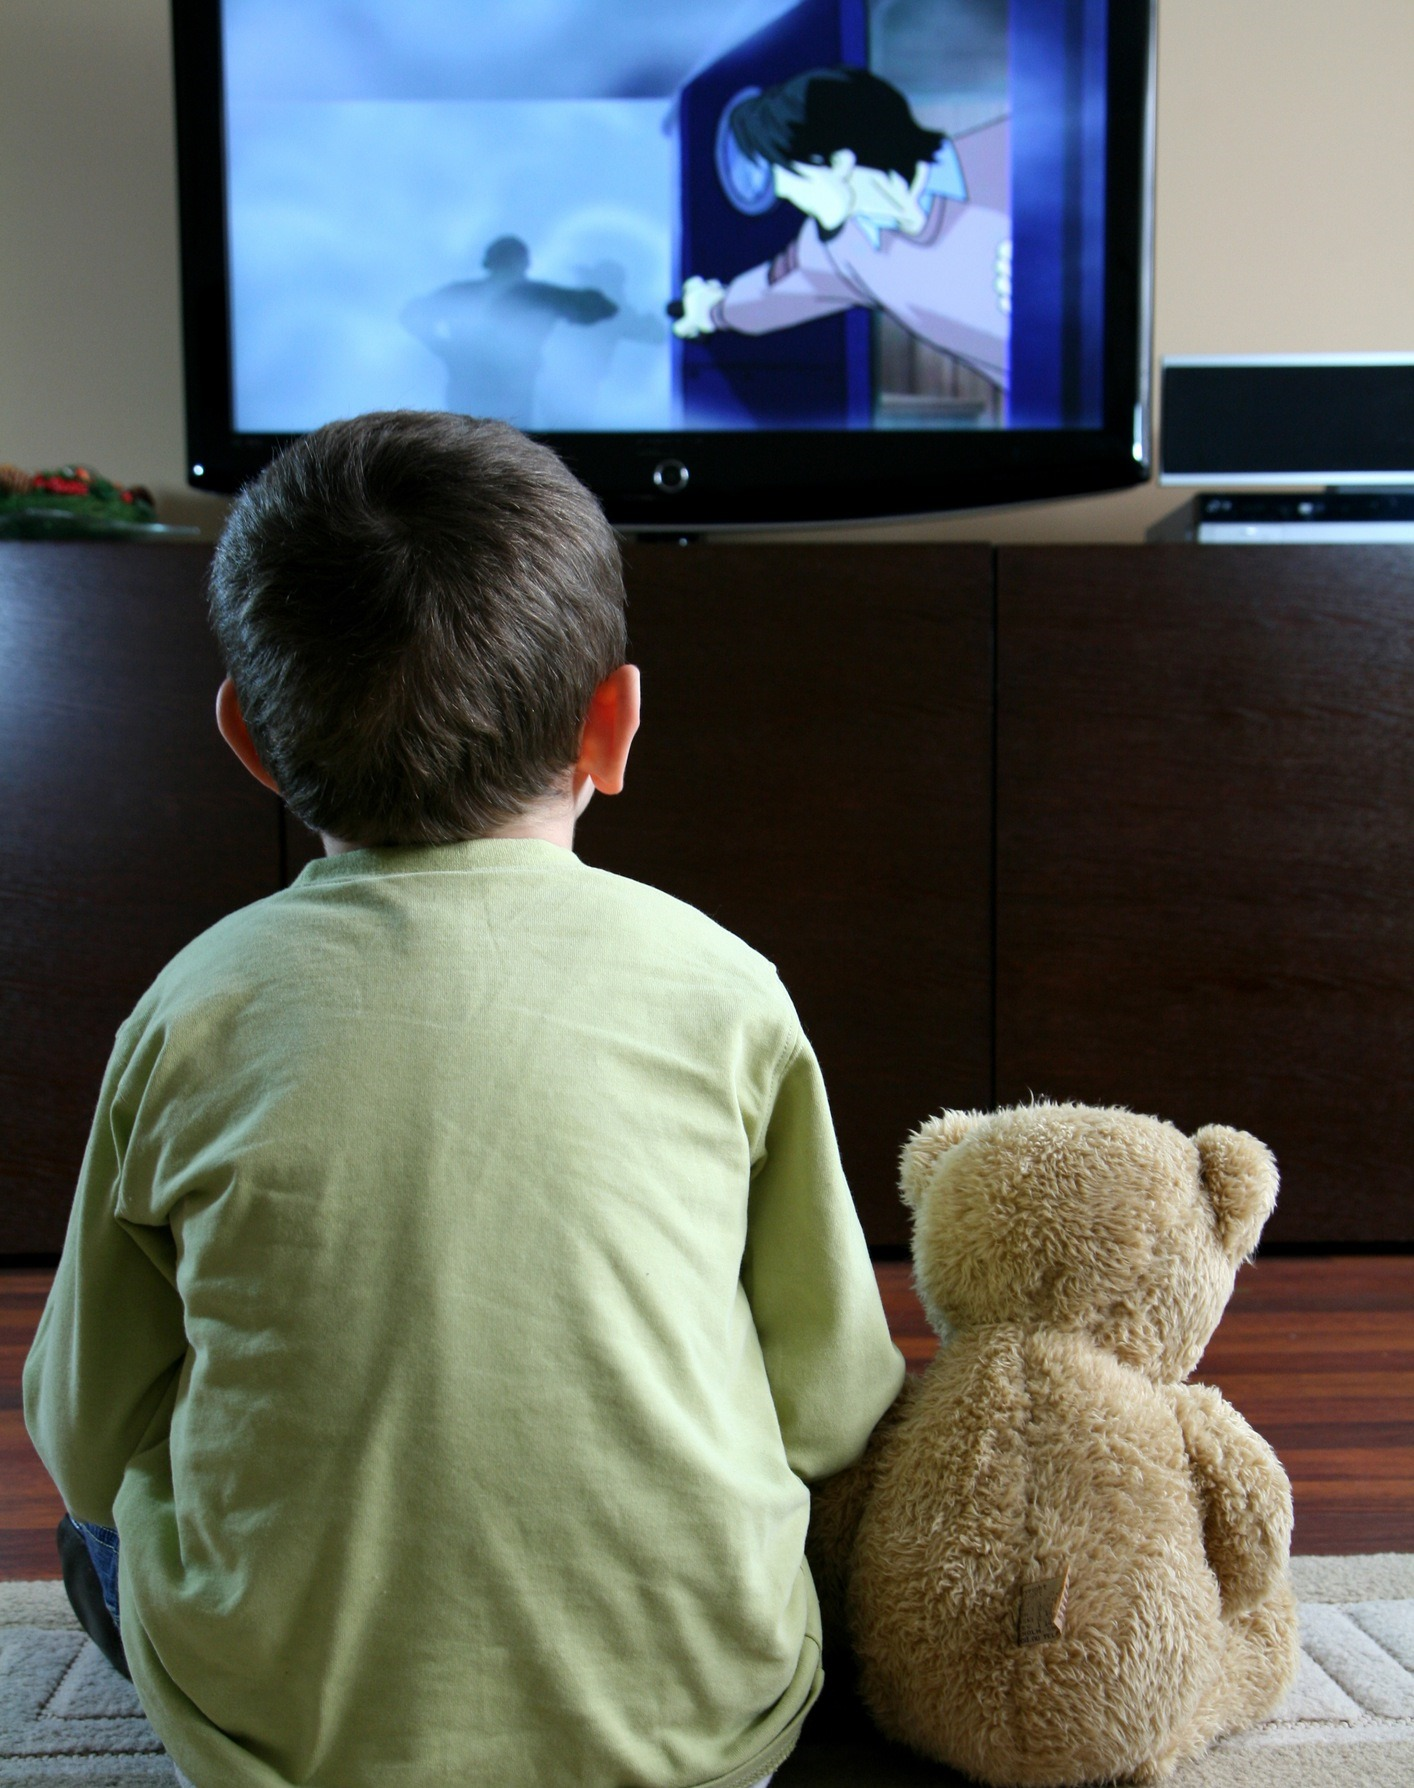 the effect of television on a childs The effects of television on children and adolescents an annot at e d bibliography with an introductory overview of research results prep are d by the international.